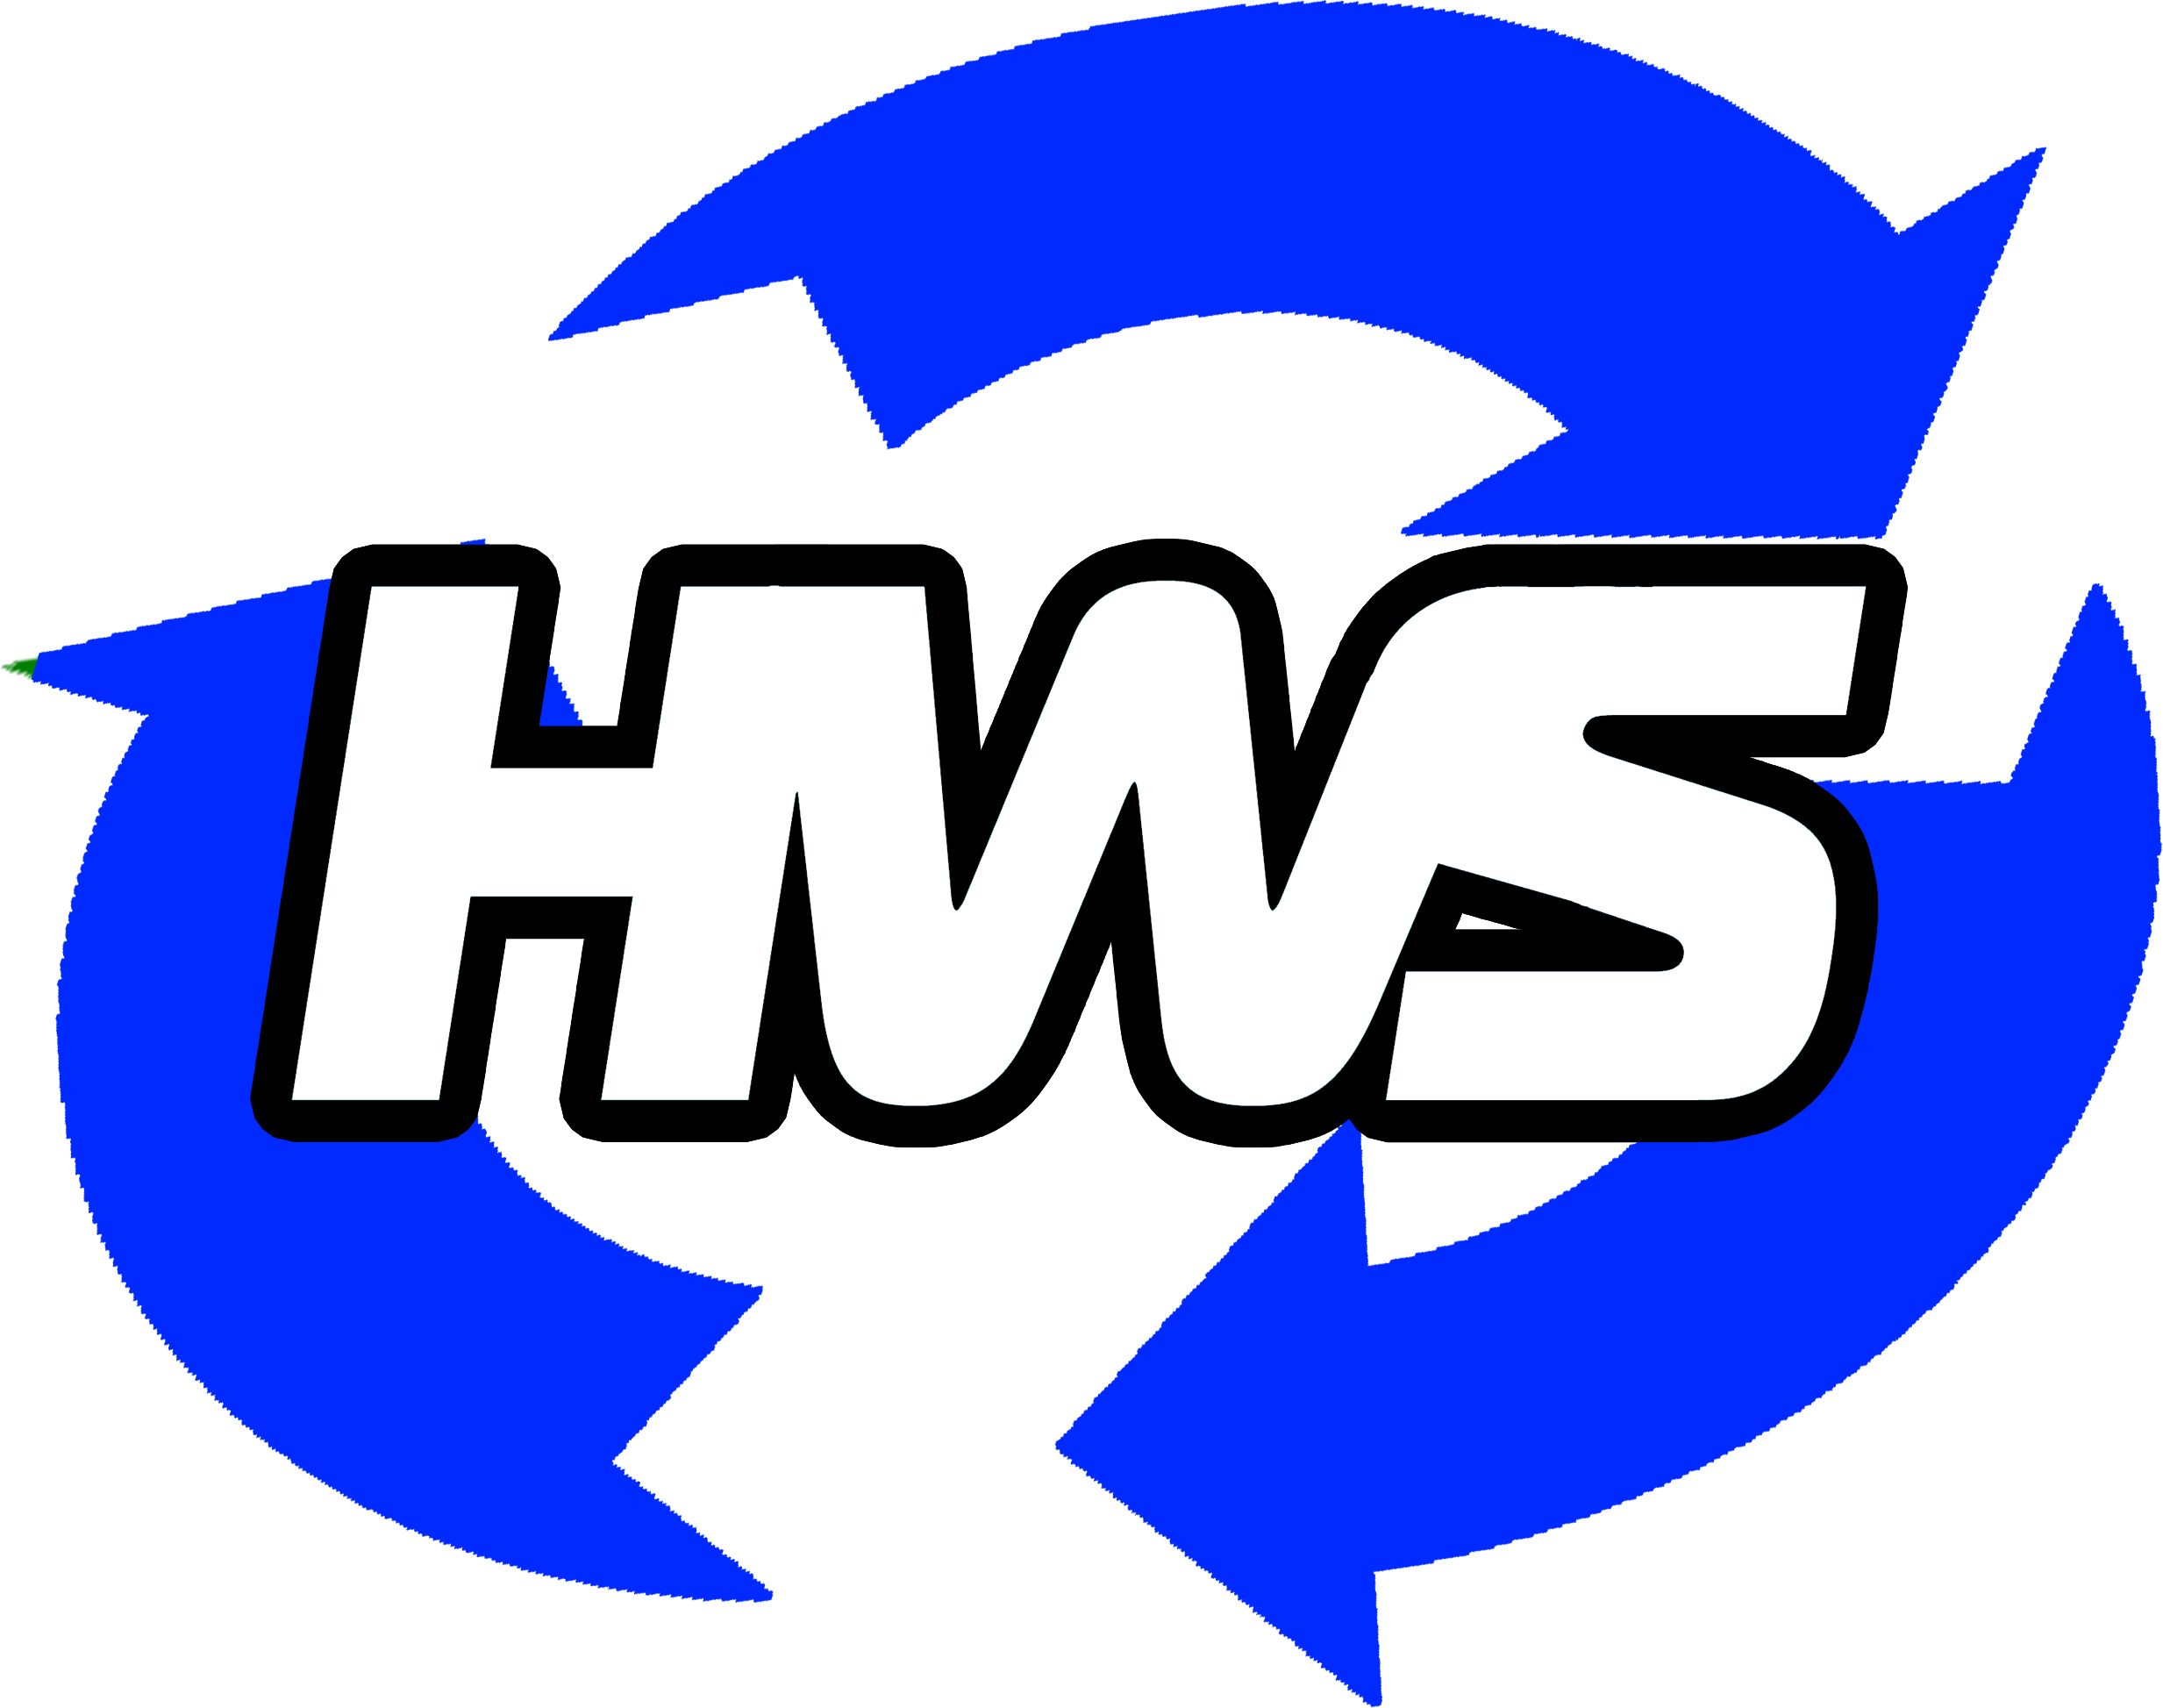 Hudson White Services Ltd